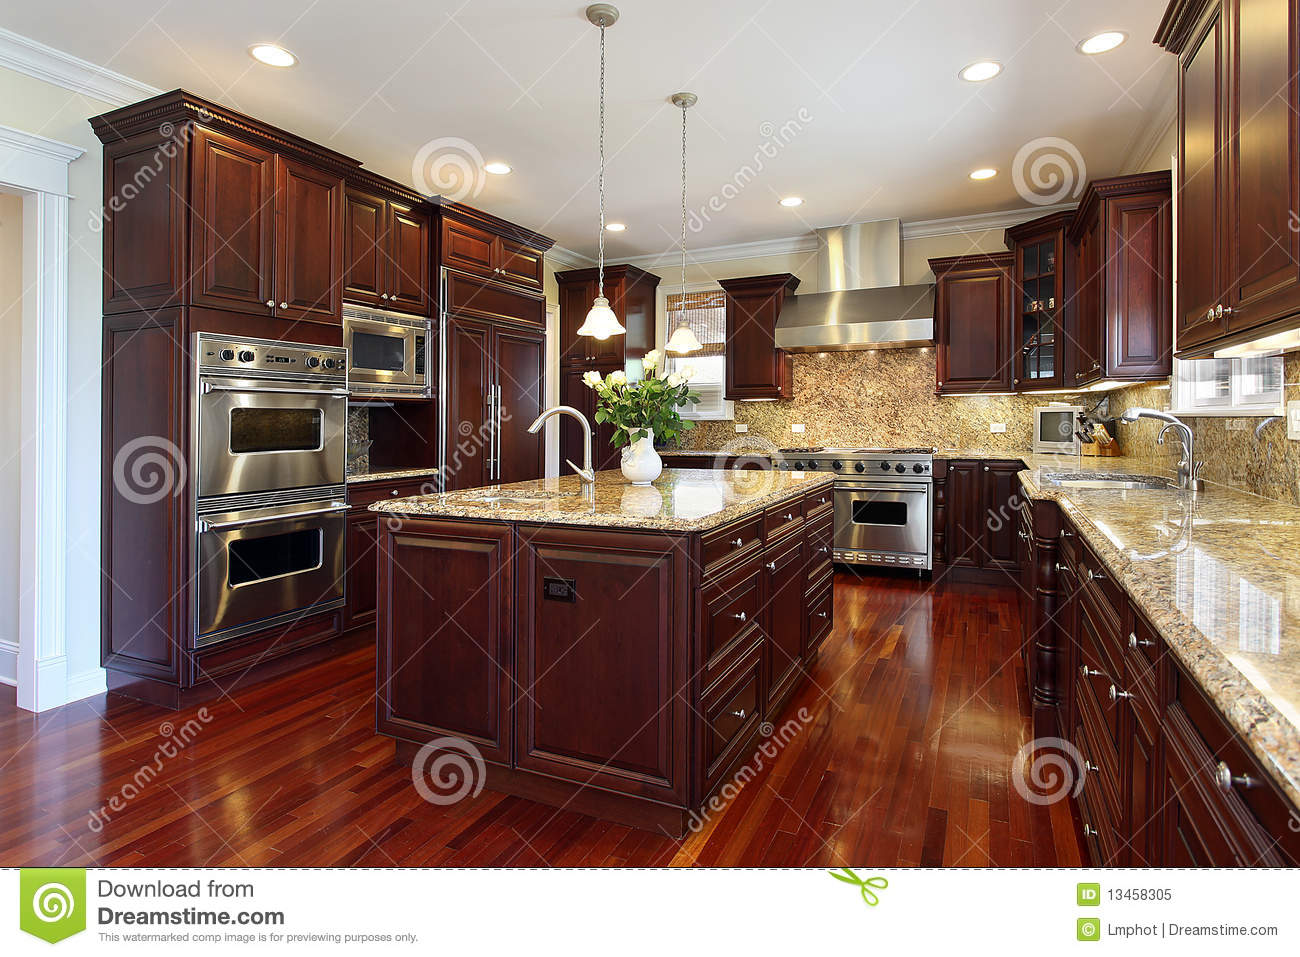 Kitchen With Cherry Wood Cabinetry Royalty Free Stock Photo Image 13458305